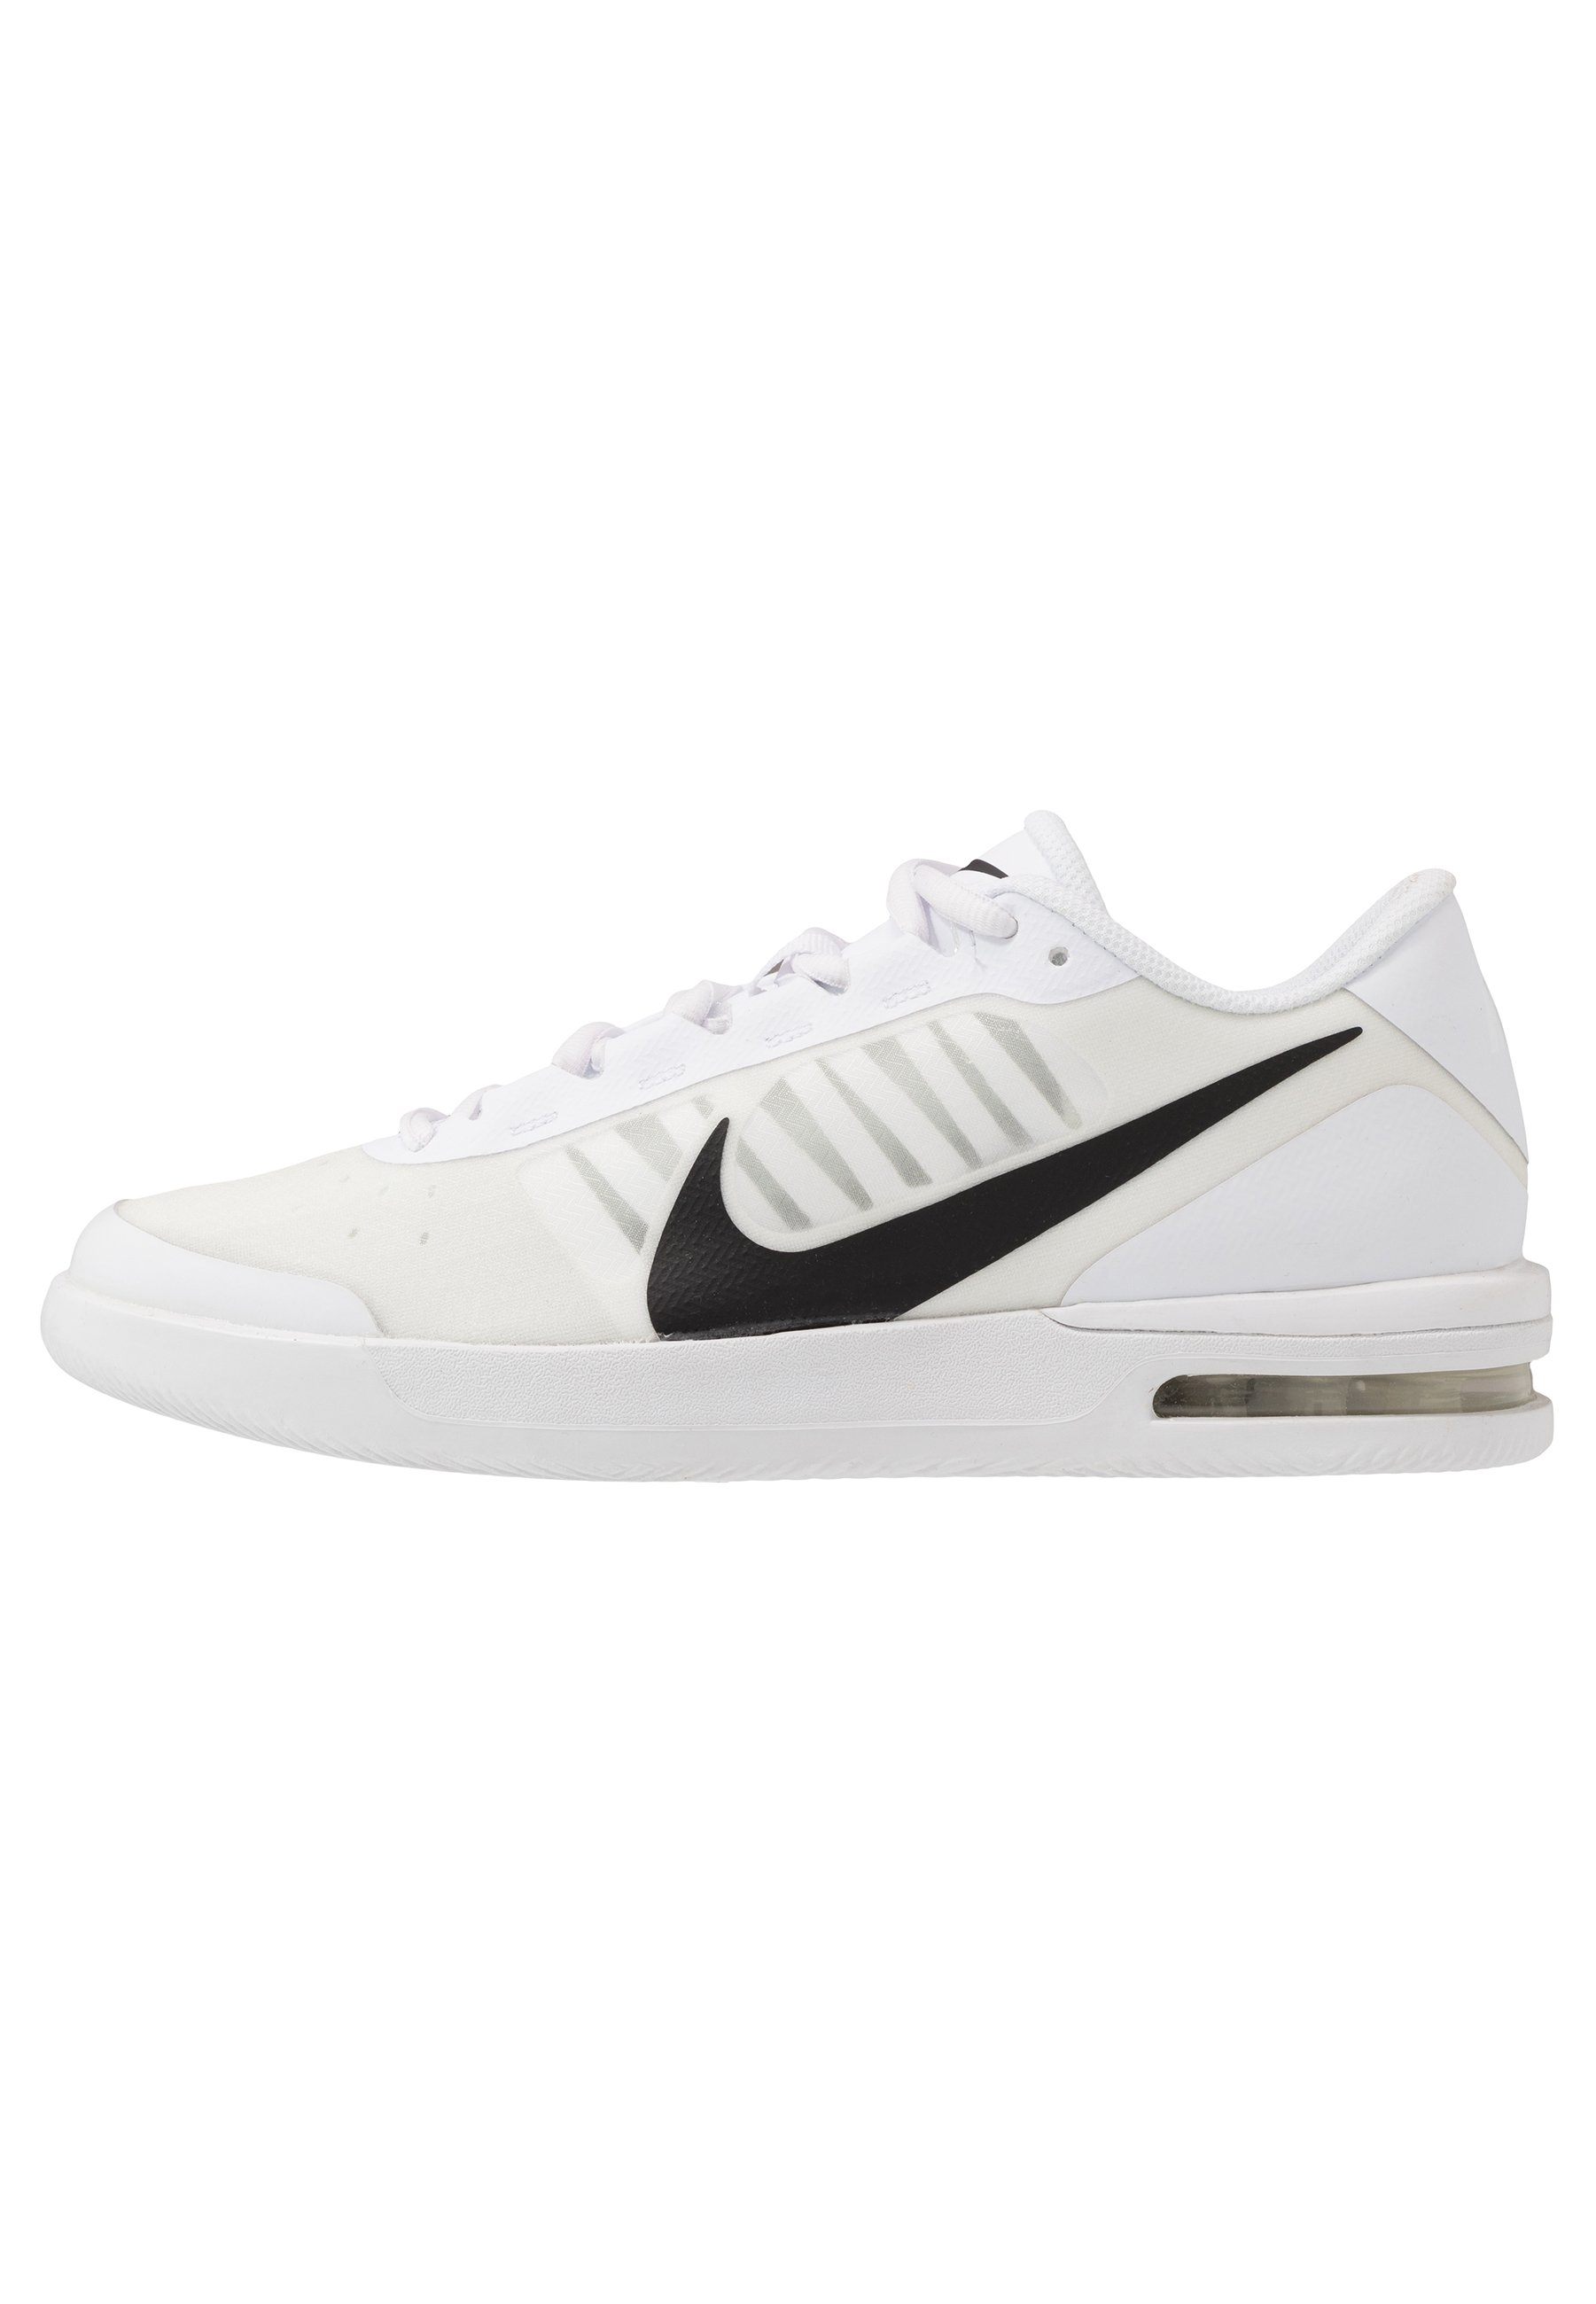 COURT AIR MAX VAPOR WING MS Zapatillas de tenis para todas las superficies whiteblack